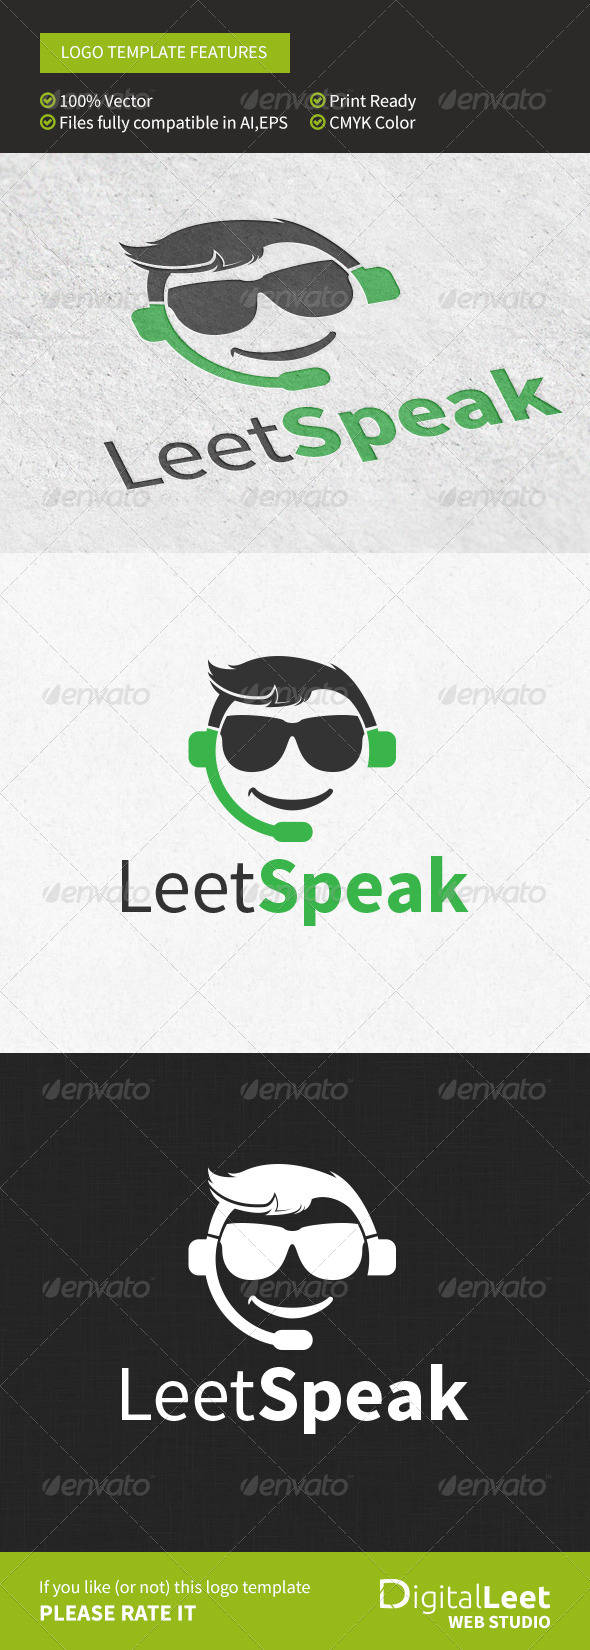 GraphicRiver Leet Speak Geek Chat Logo Template 8746395